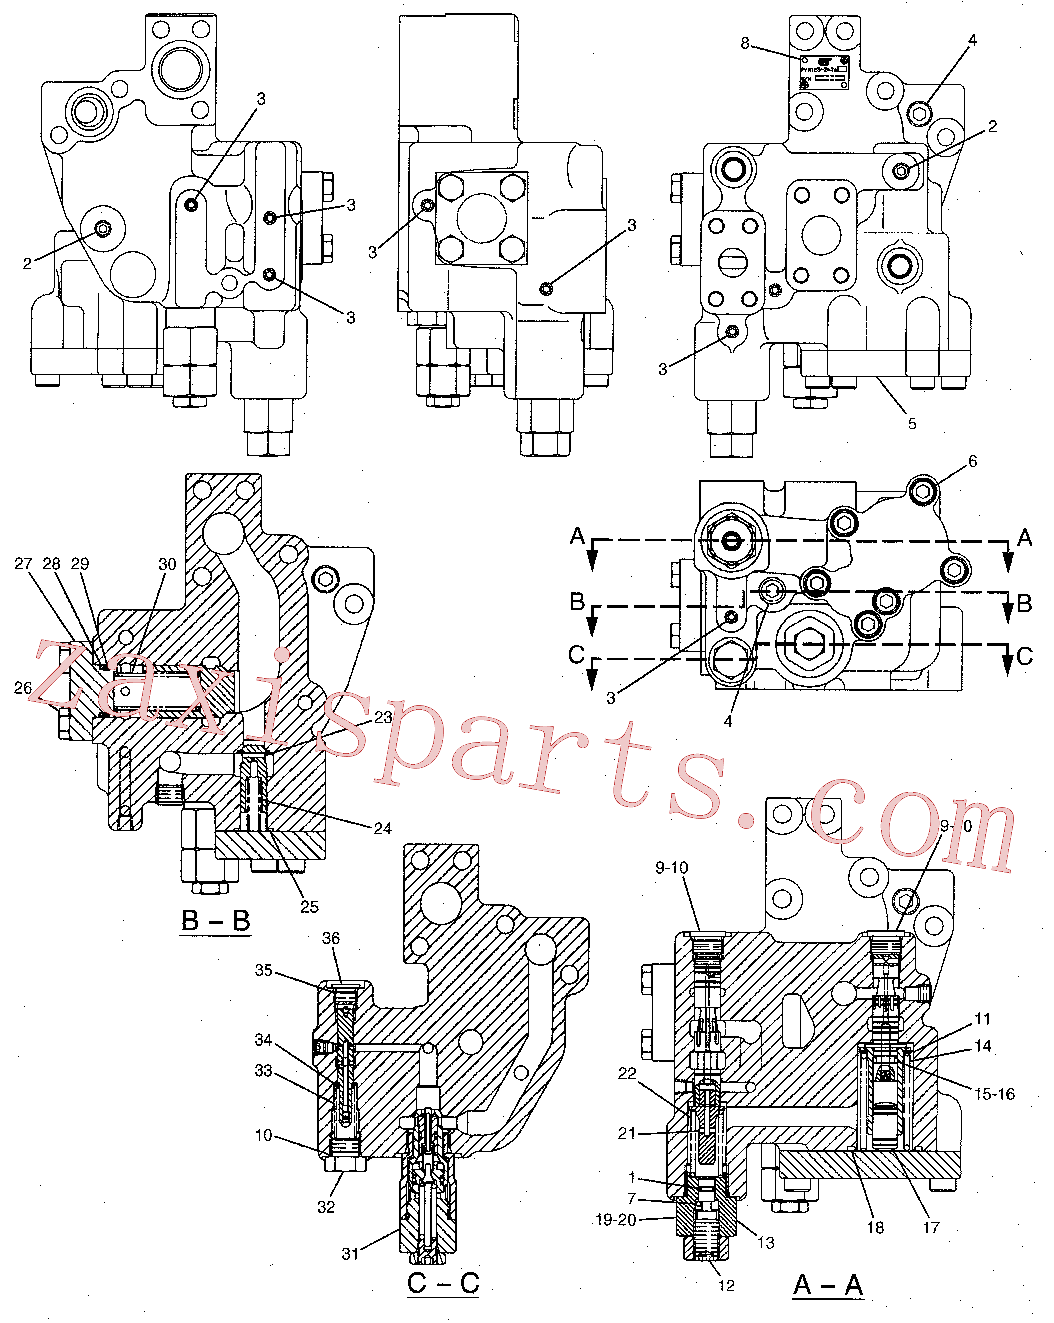 CAT 8T-2637 for D8N Track Type Tractor(TTT) hydraulic system 171-3266 Assembly